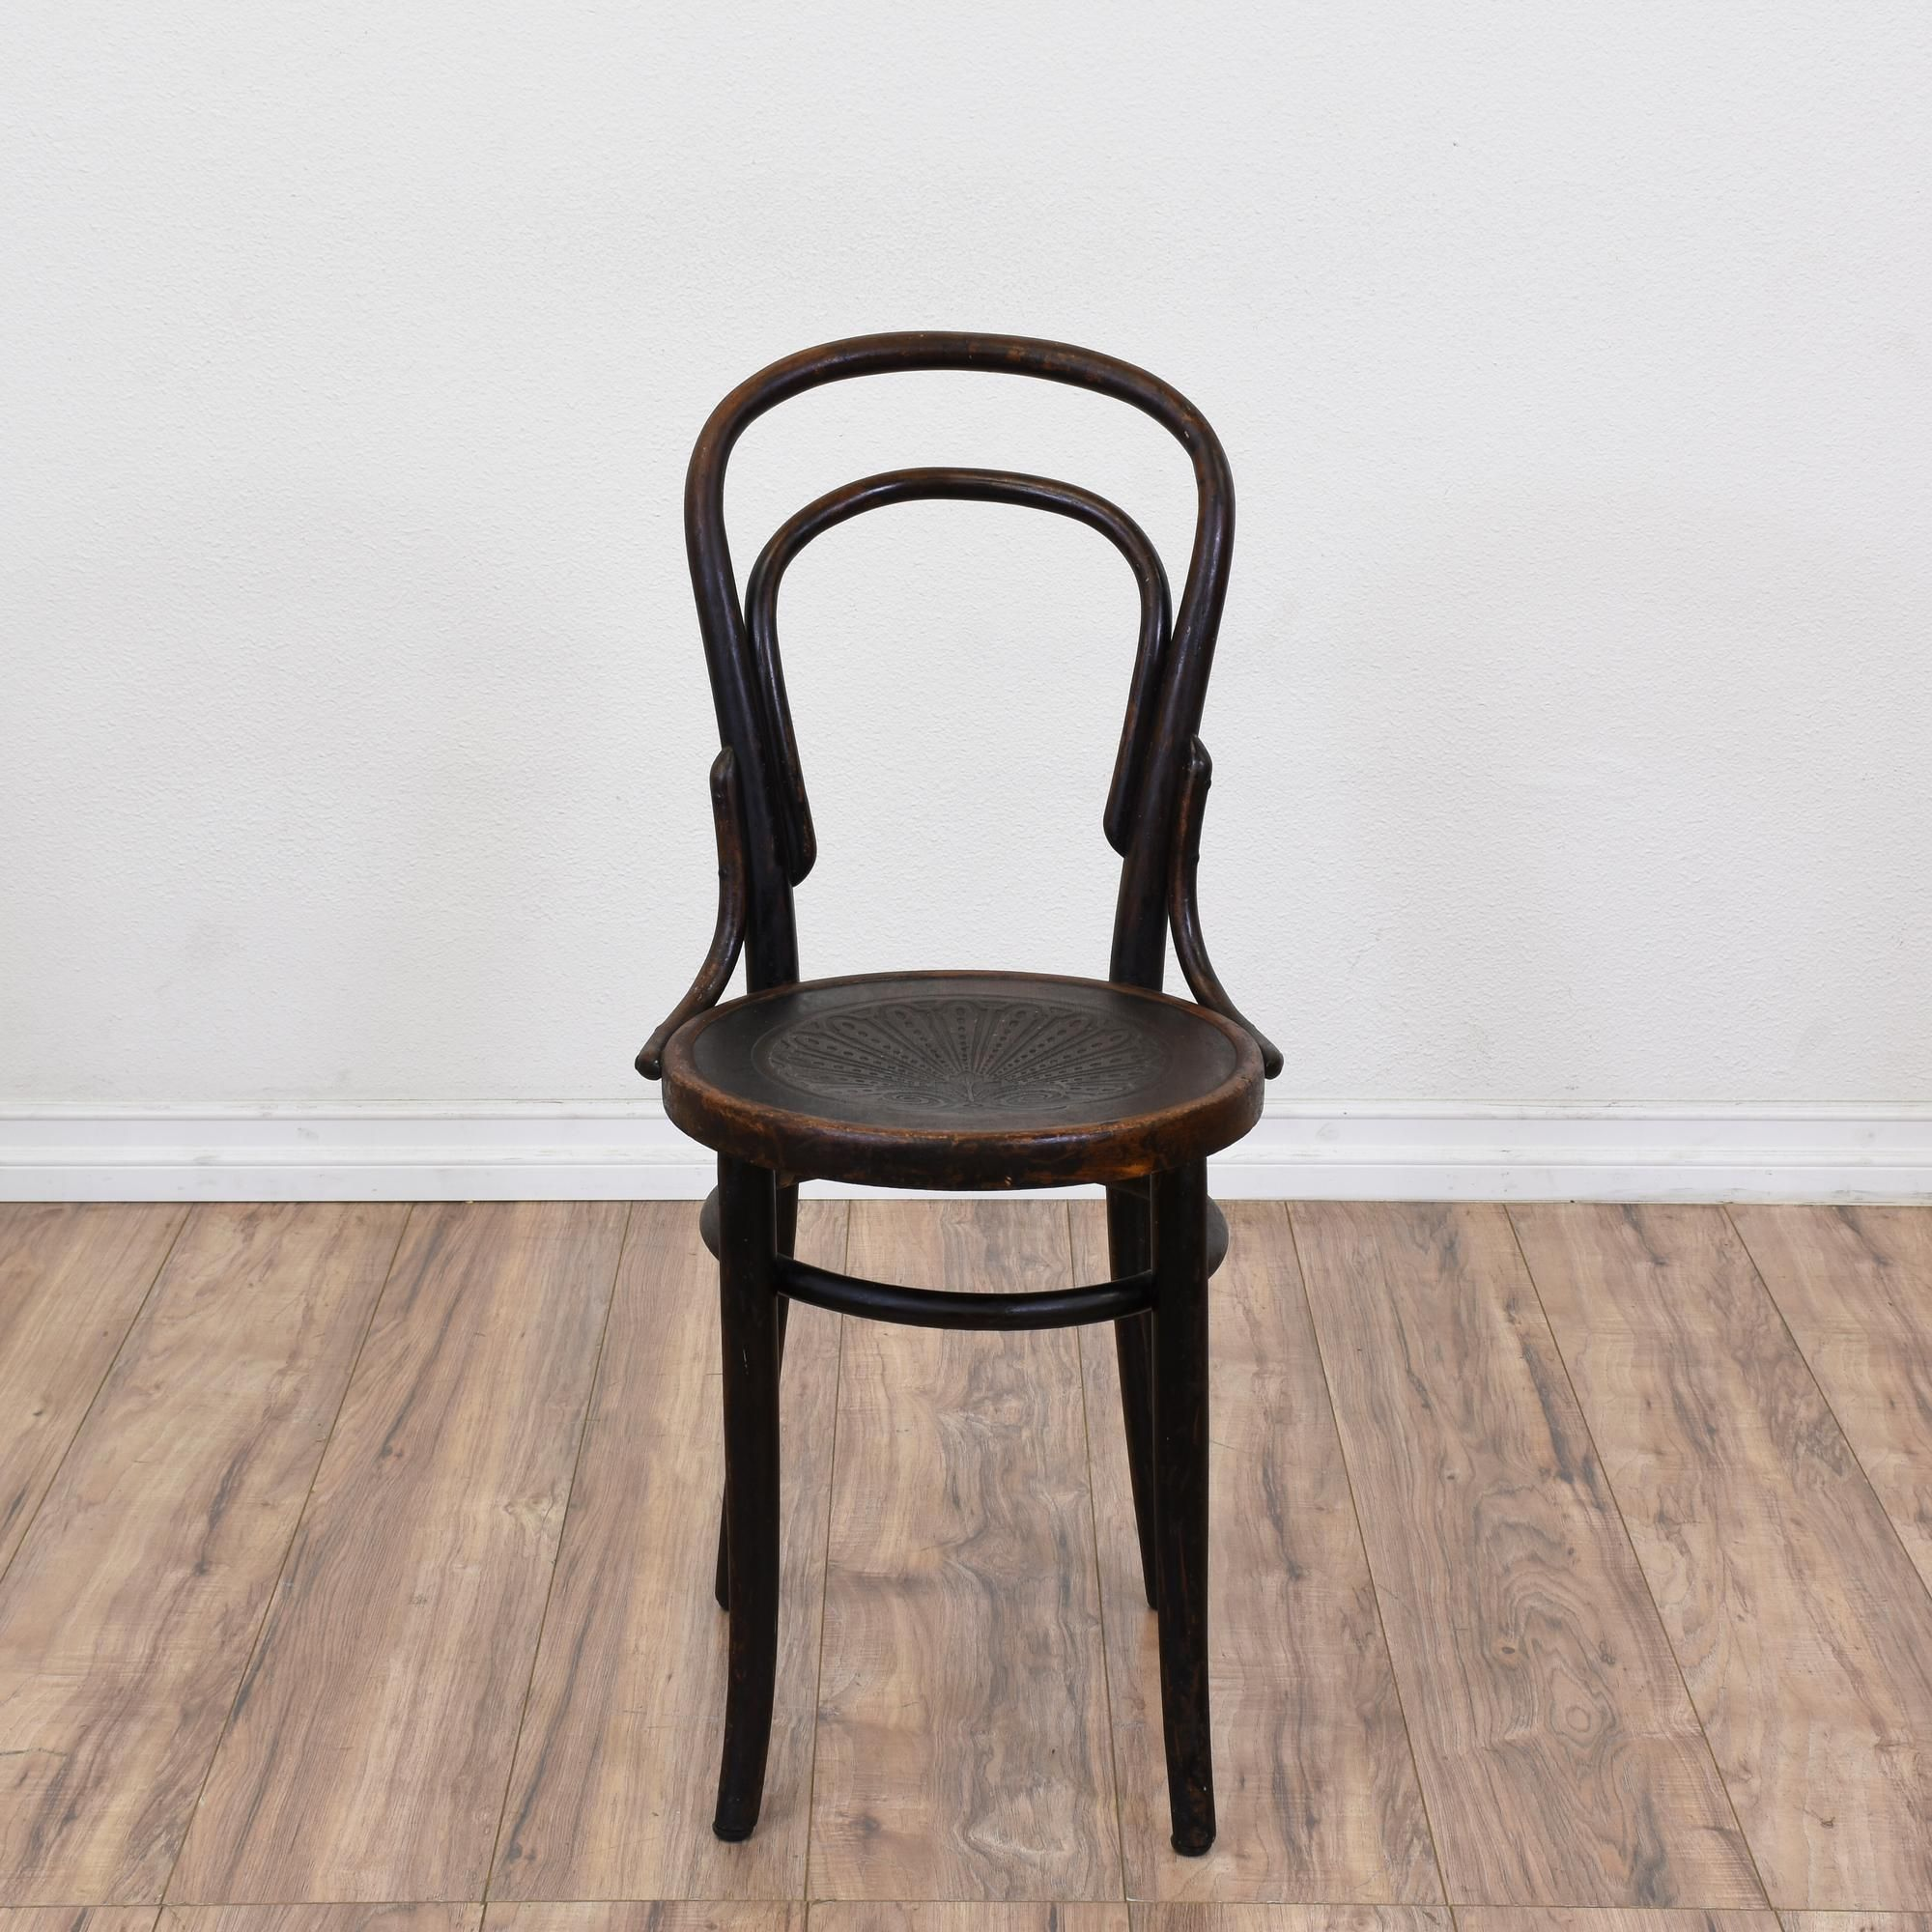 Bentwood chairs domino - Antique Bentwood Chair W Steam Pressed Seat